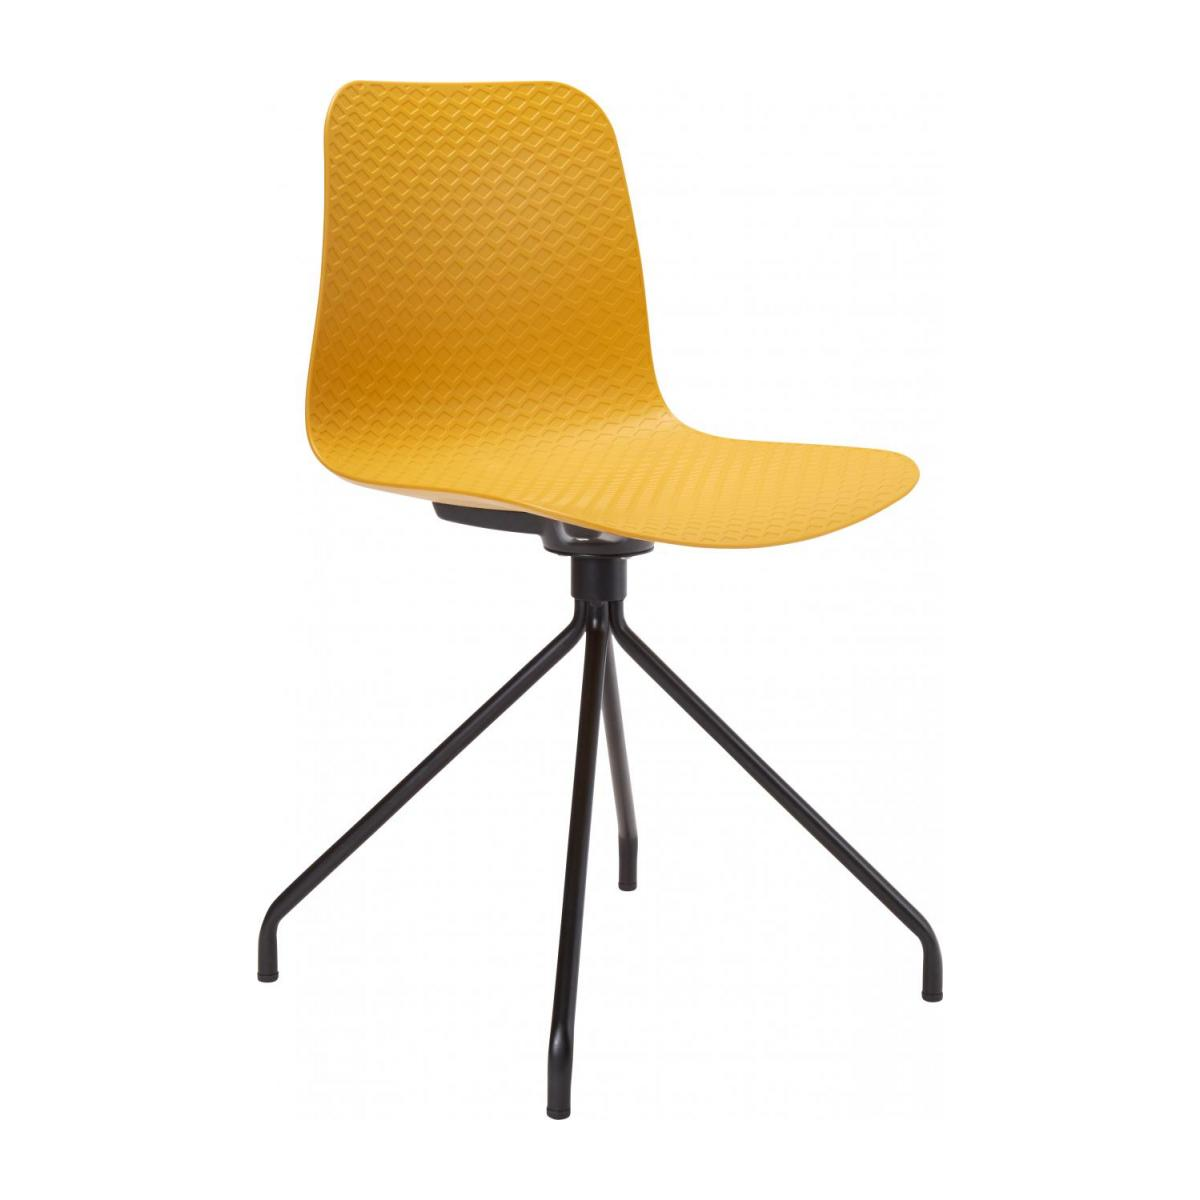 Yellow chair in polypropylene and lacquered steel legs n°1